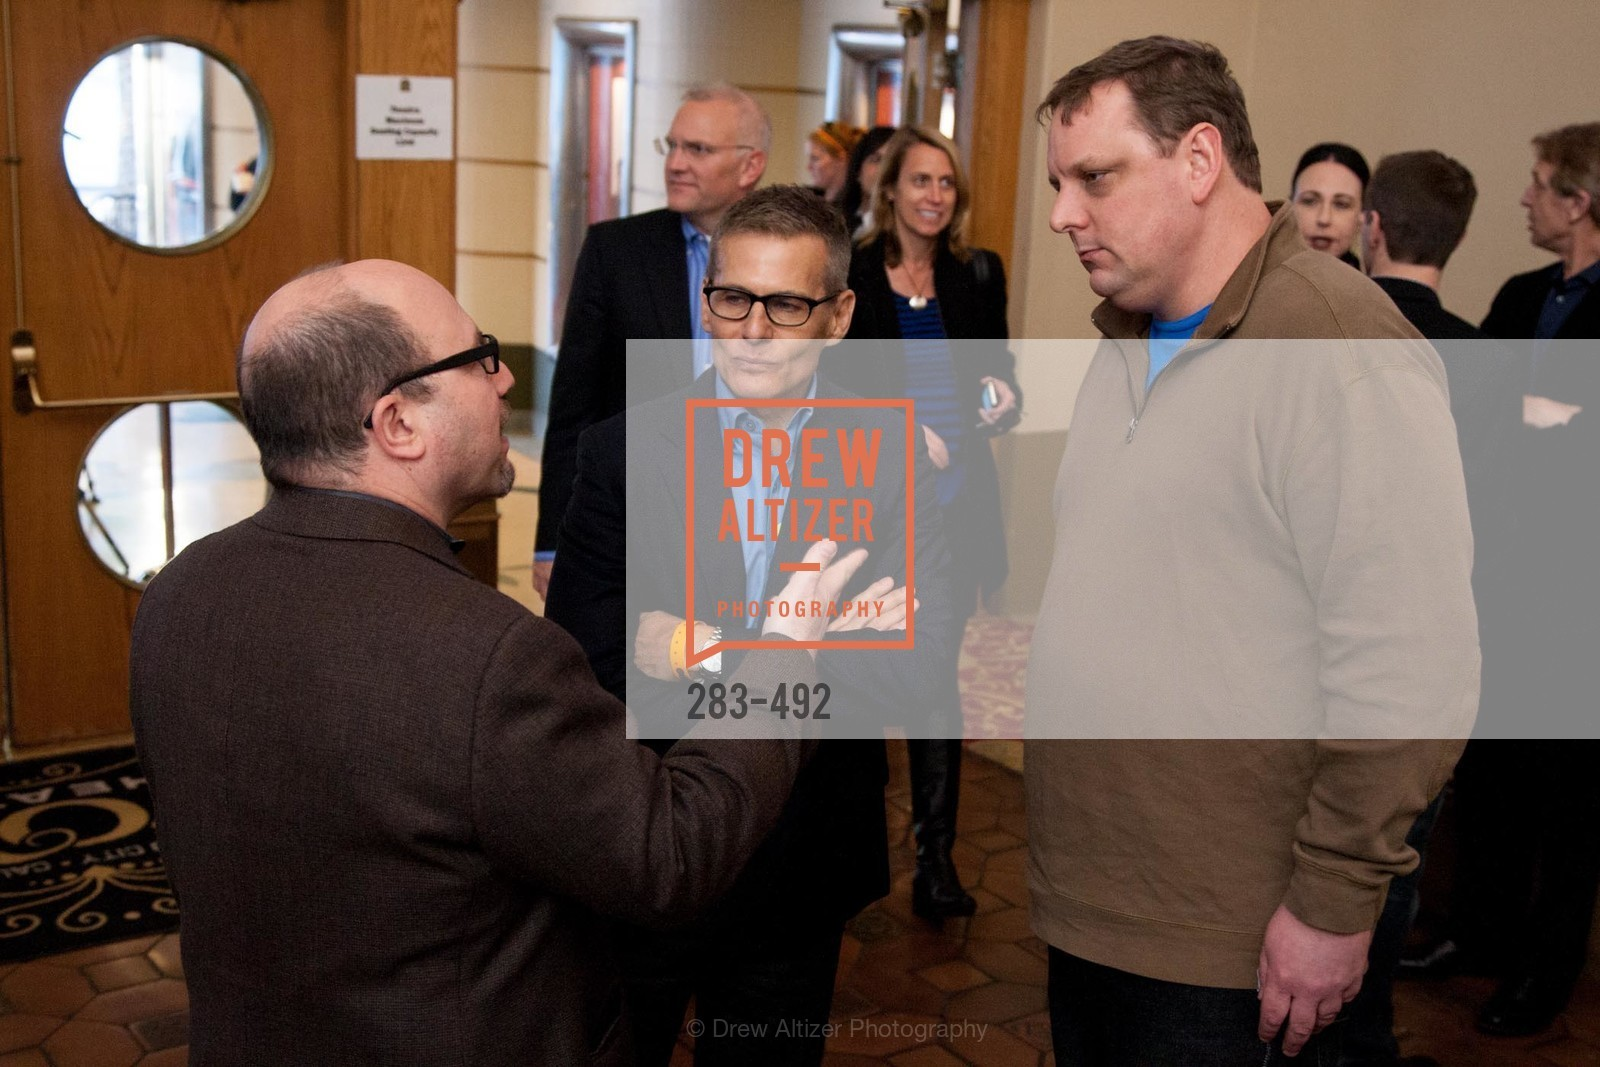 Michael Lombardo, Michael Errington, Craig Newmark, HBO Original Series 'Silicon Valley' Bay Area Premiere, US. US, April 2nd, 2014,Drew Altizer, Drew Altizer Photography, full-service agency, private events, San Francisco photographer, photographer california